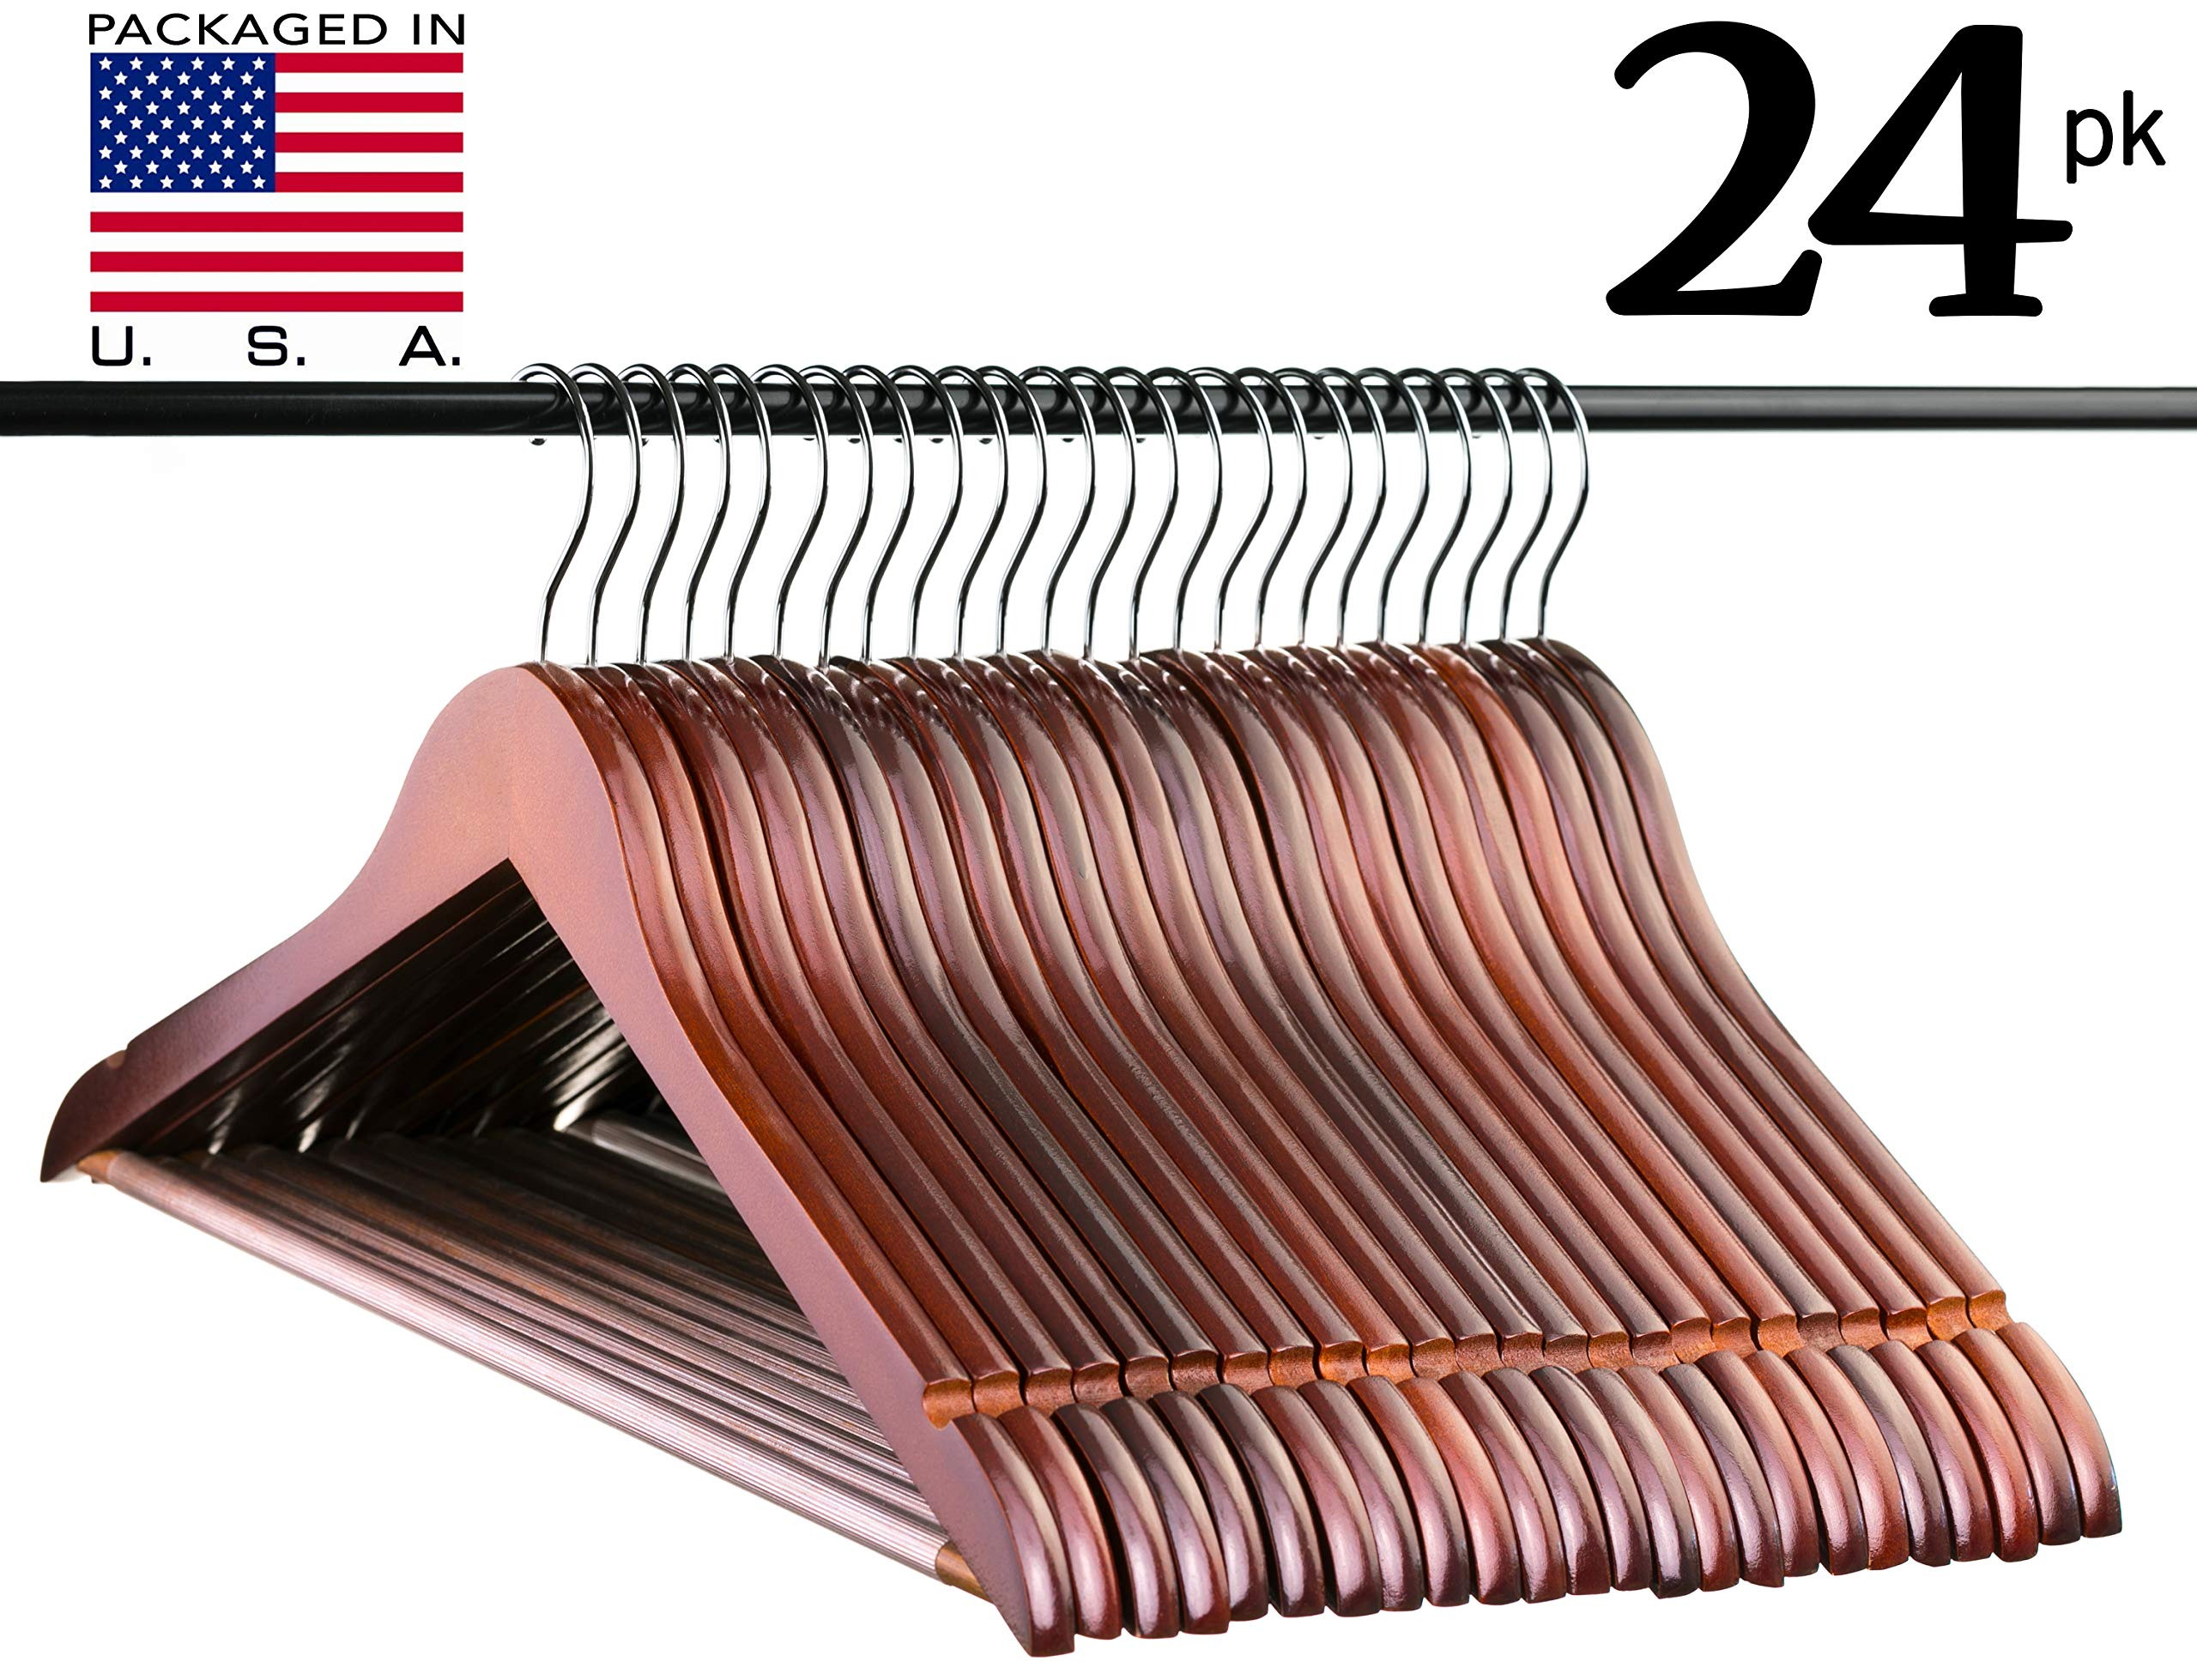 Walnut Solid Everyday Wood Hangers with Non-Slip Bar and Notches, Super Sturdy and Durable Wood, 24 pack